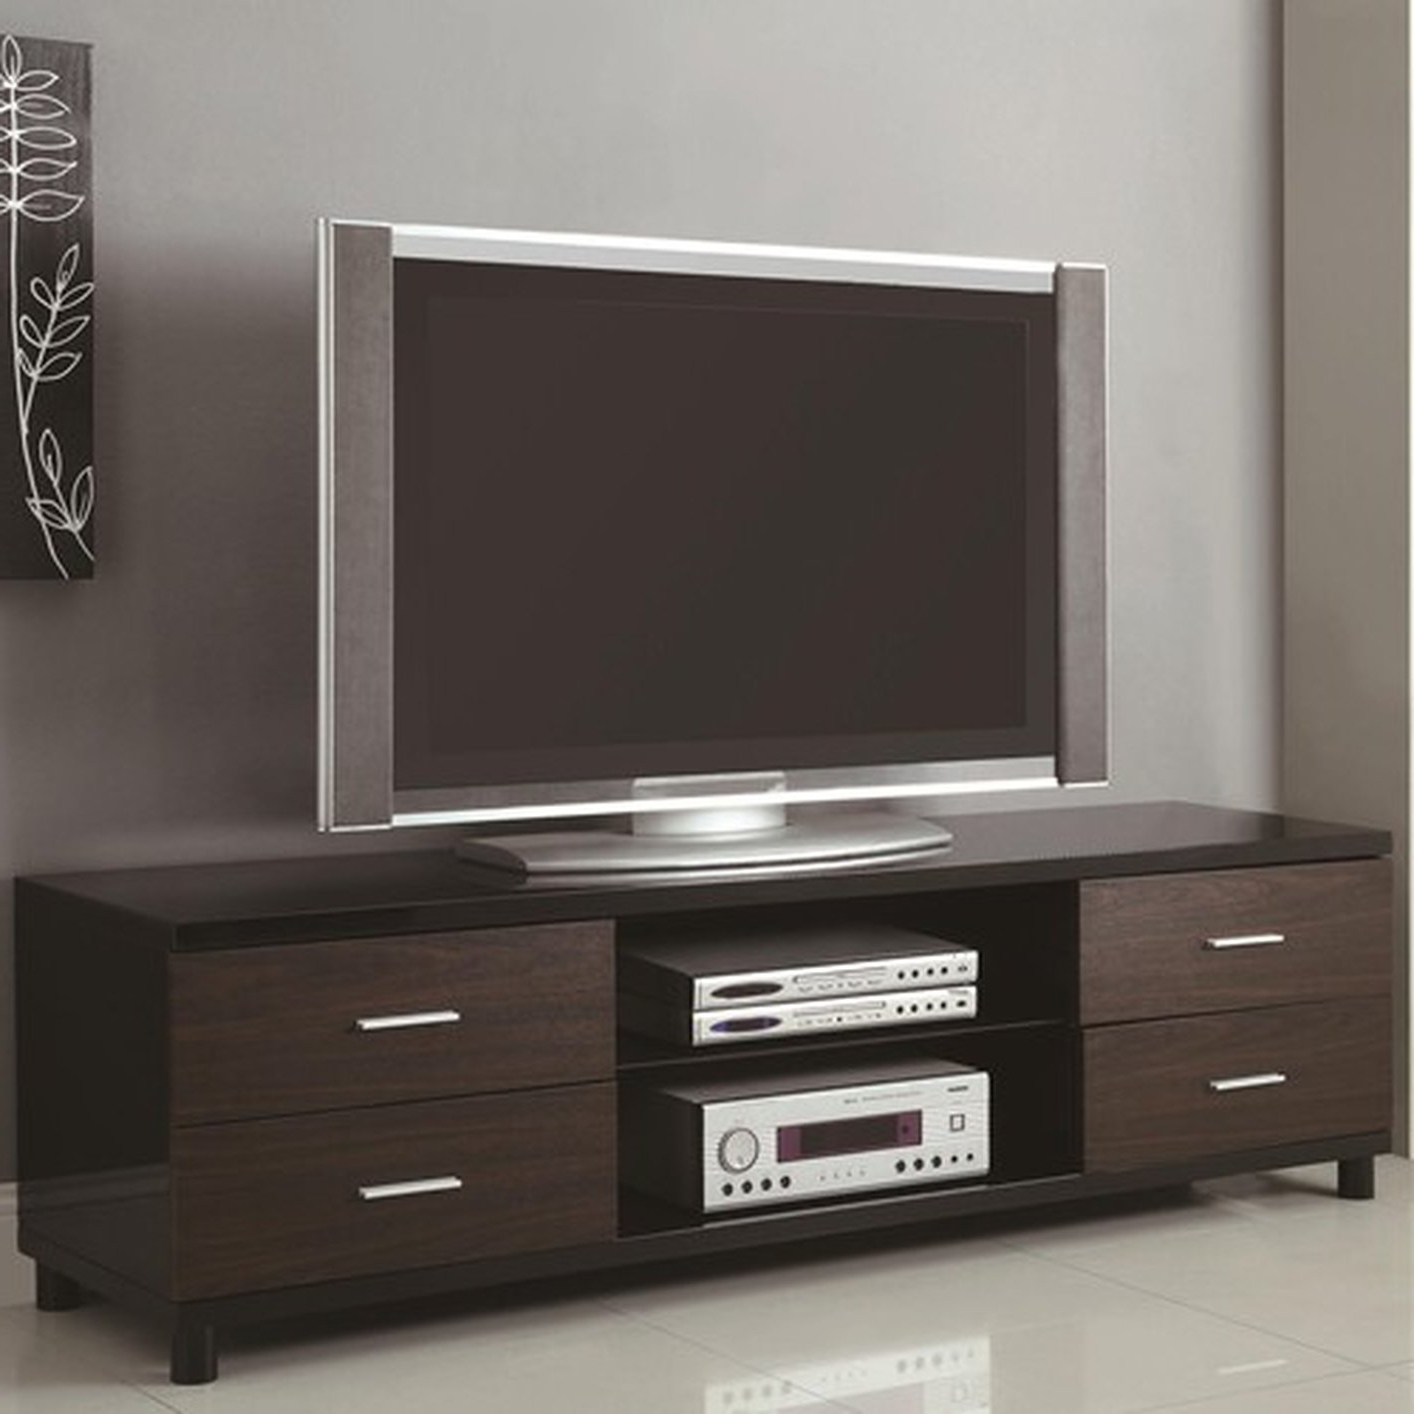 Brown Wood Tv Stand – Steal A Sofa Furniture Outlet Los Angeles Ca Throughout Fashionable Wooden Tv Stands (View 3 of 20)